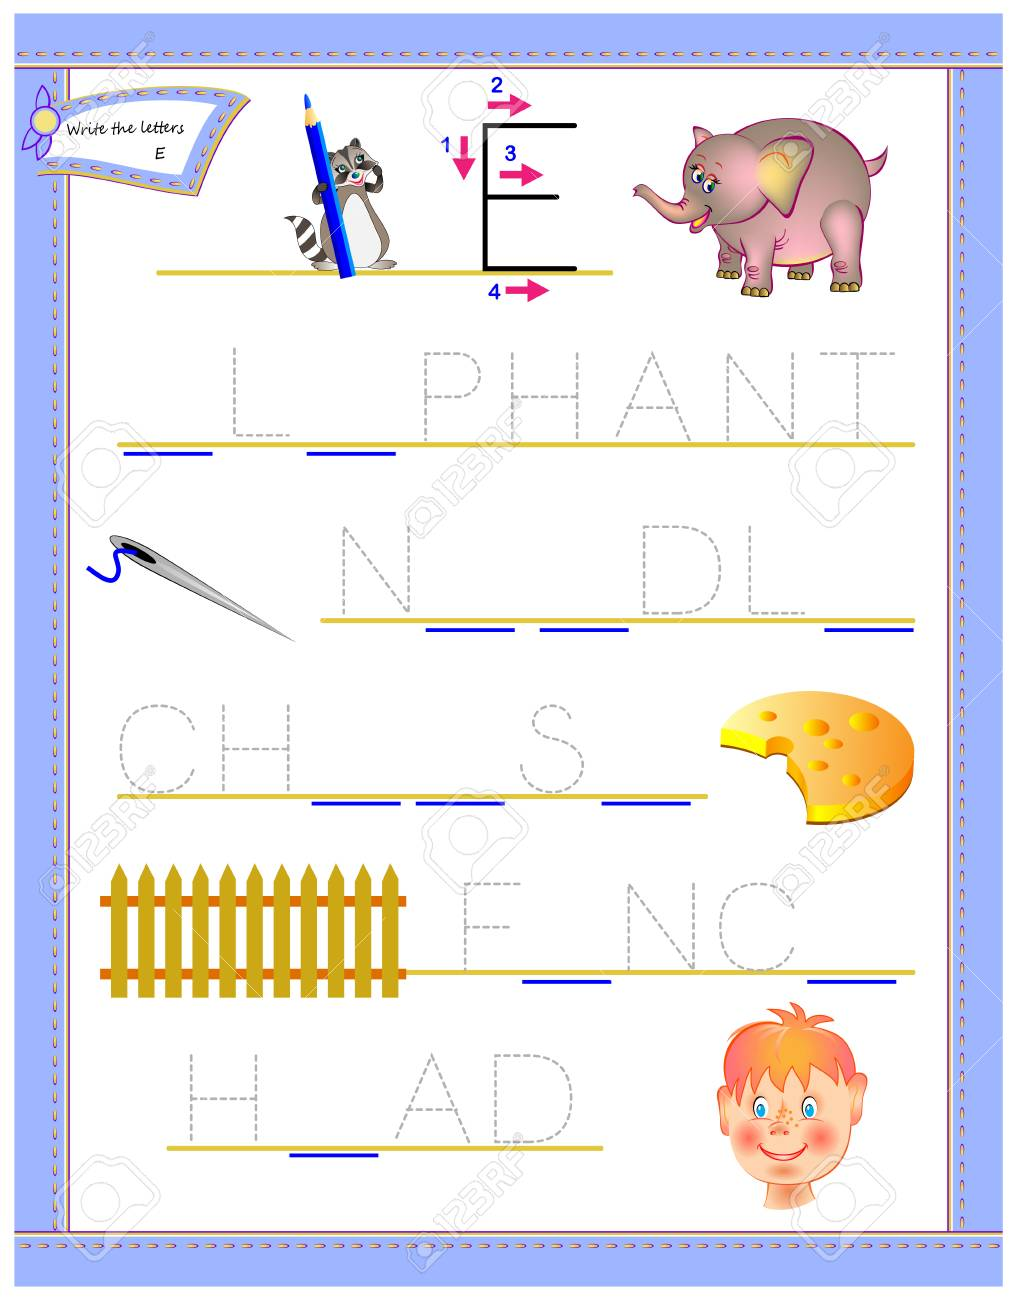 Tracing Letter E For Study English Alphabet Printable Worksheet